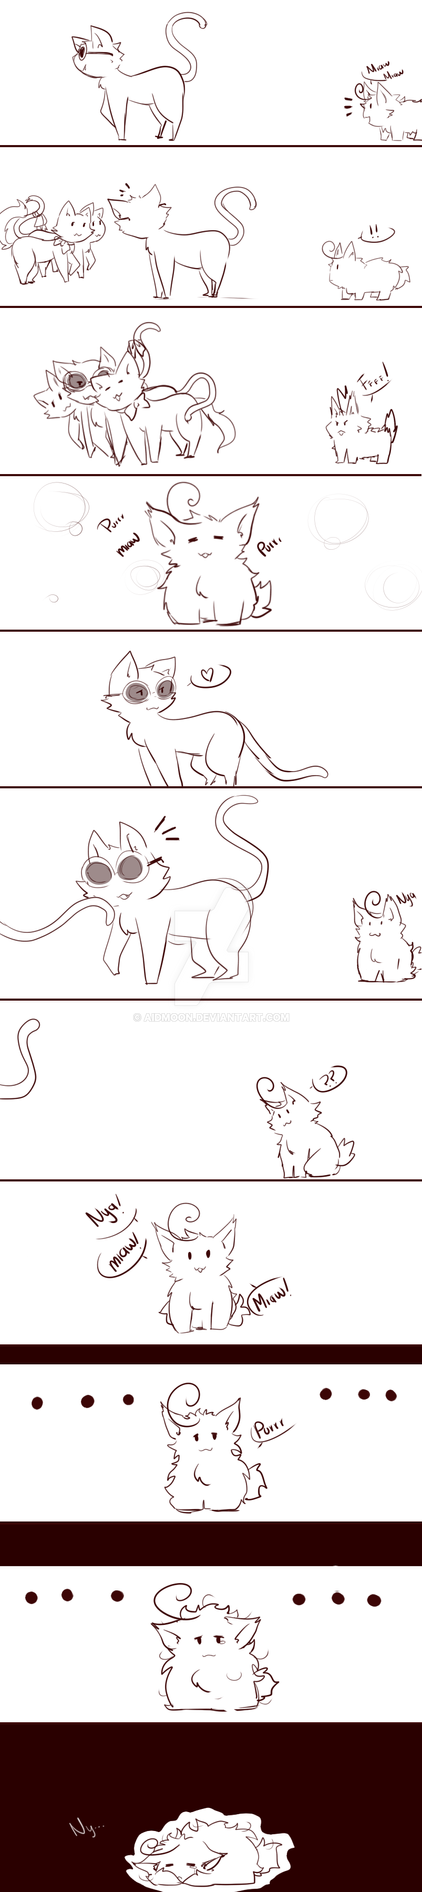 Cat Story [the lorax] by aidmoon